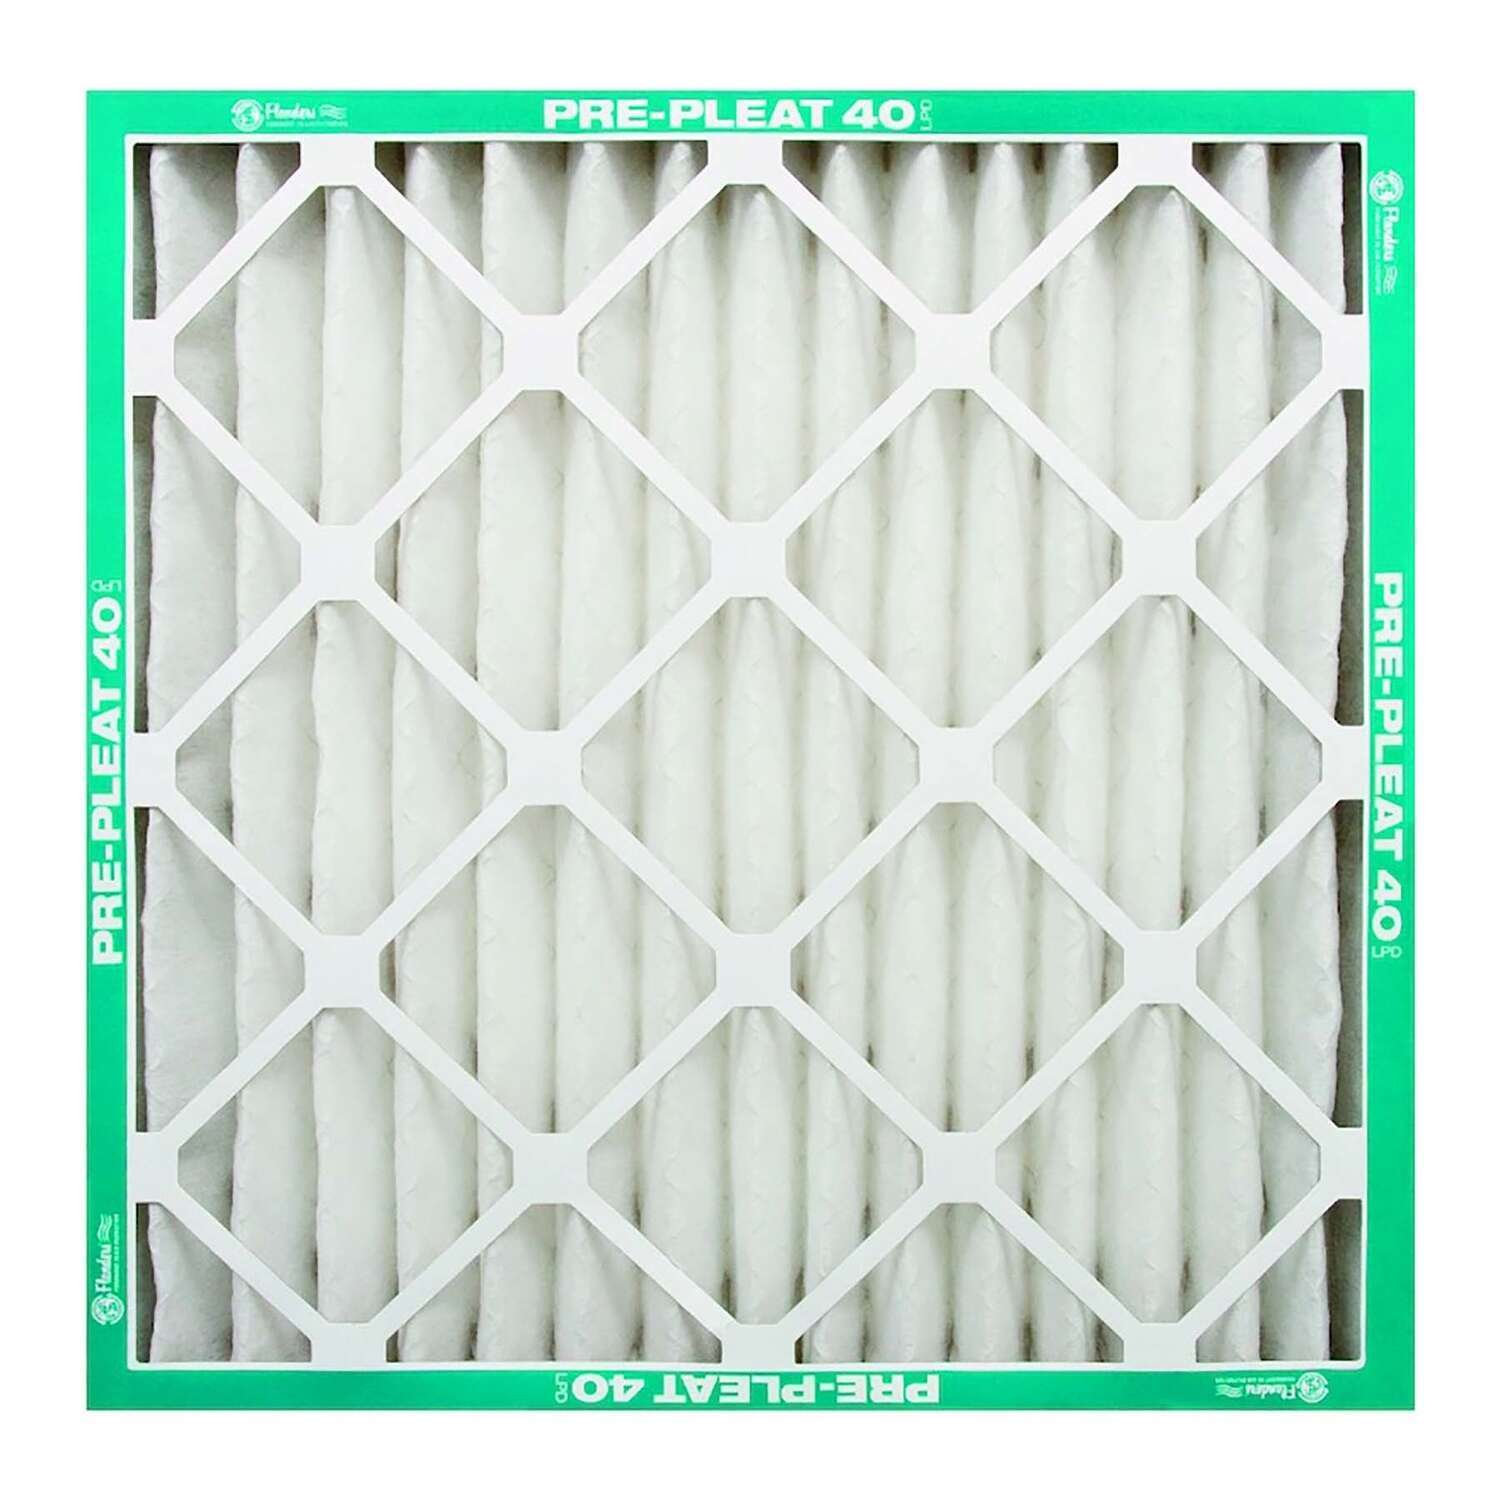 Flanders PREpleat 20 in. W x 25 in. H x 2 in. D Synthetic 8 MERV Pleated Air Filter